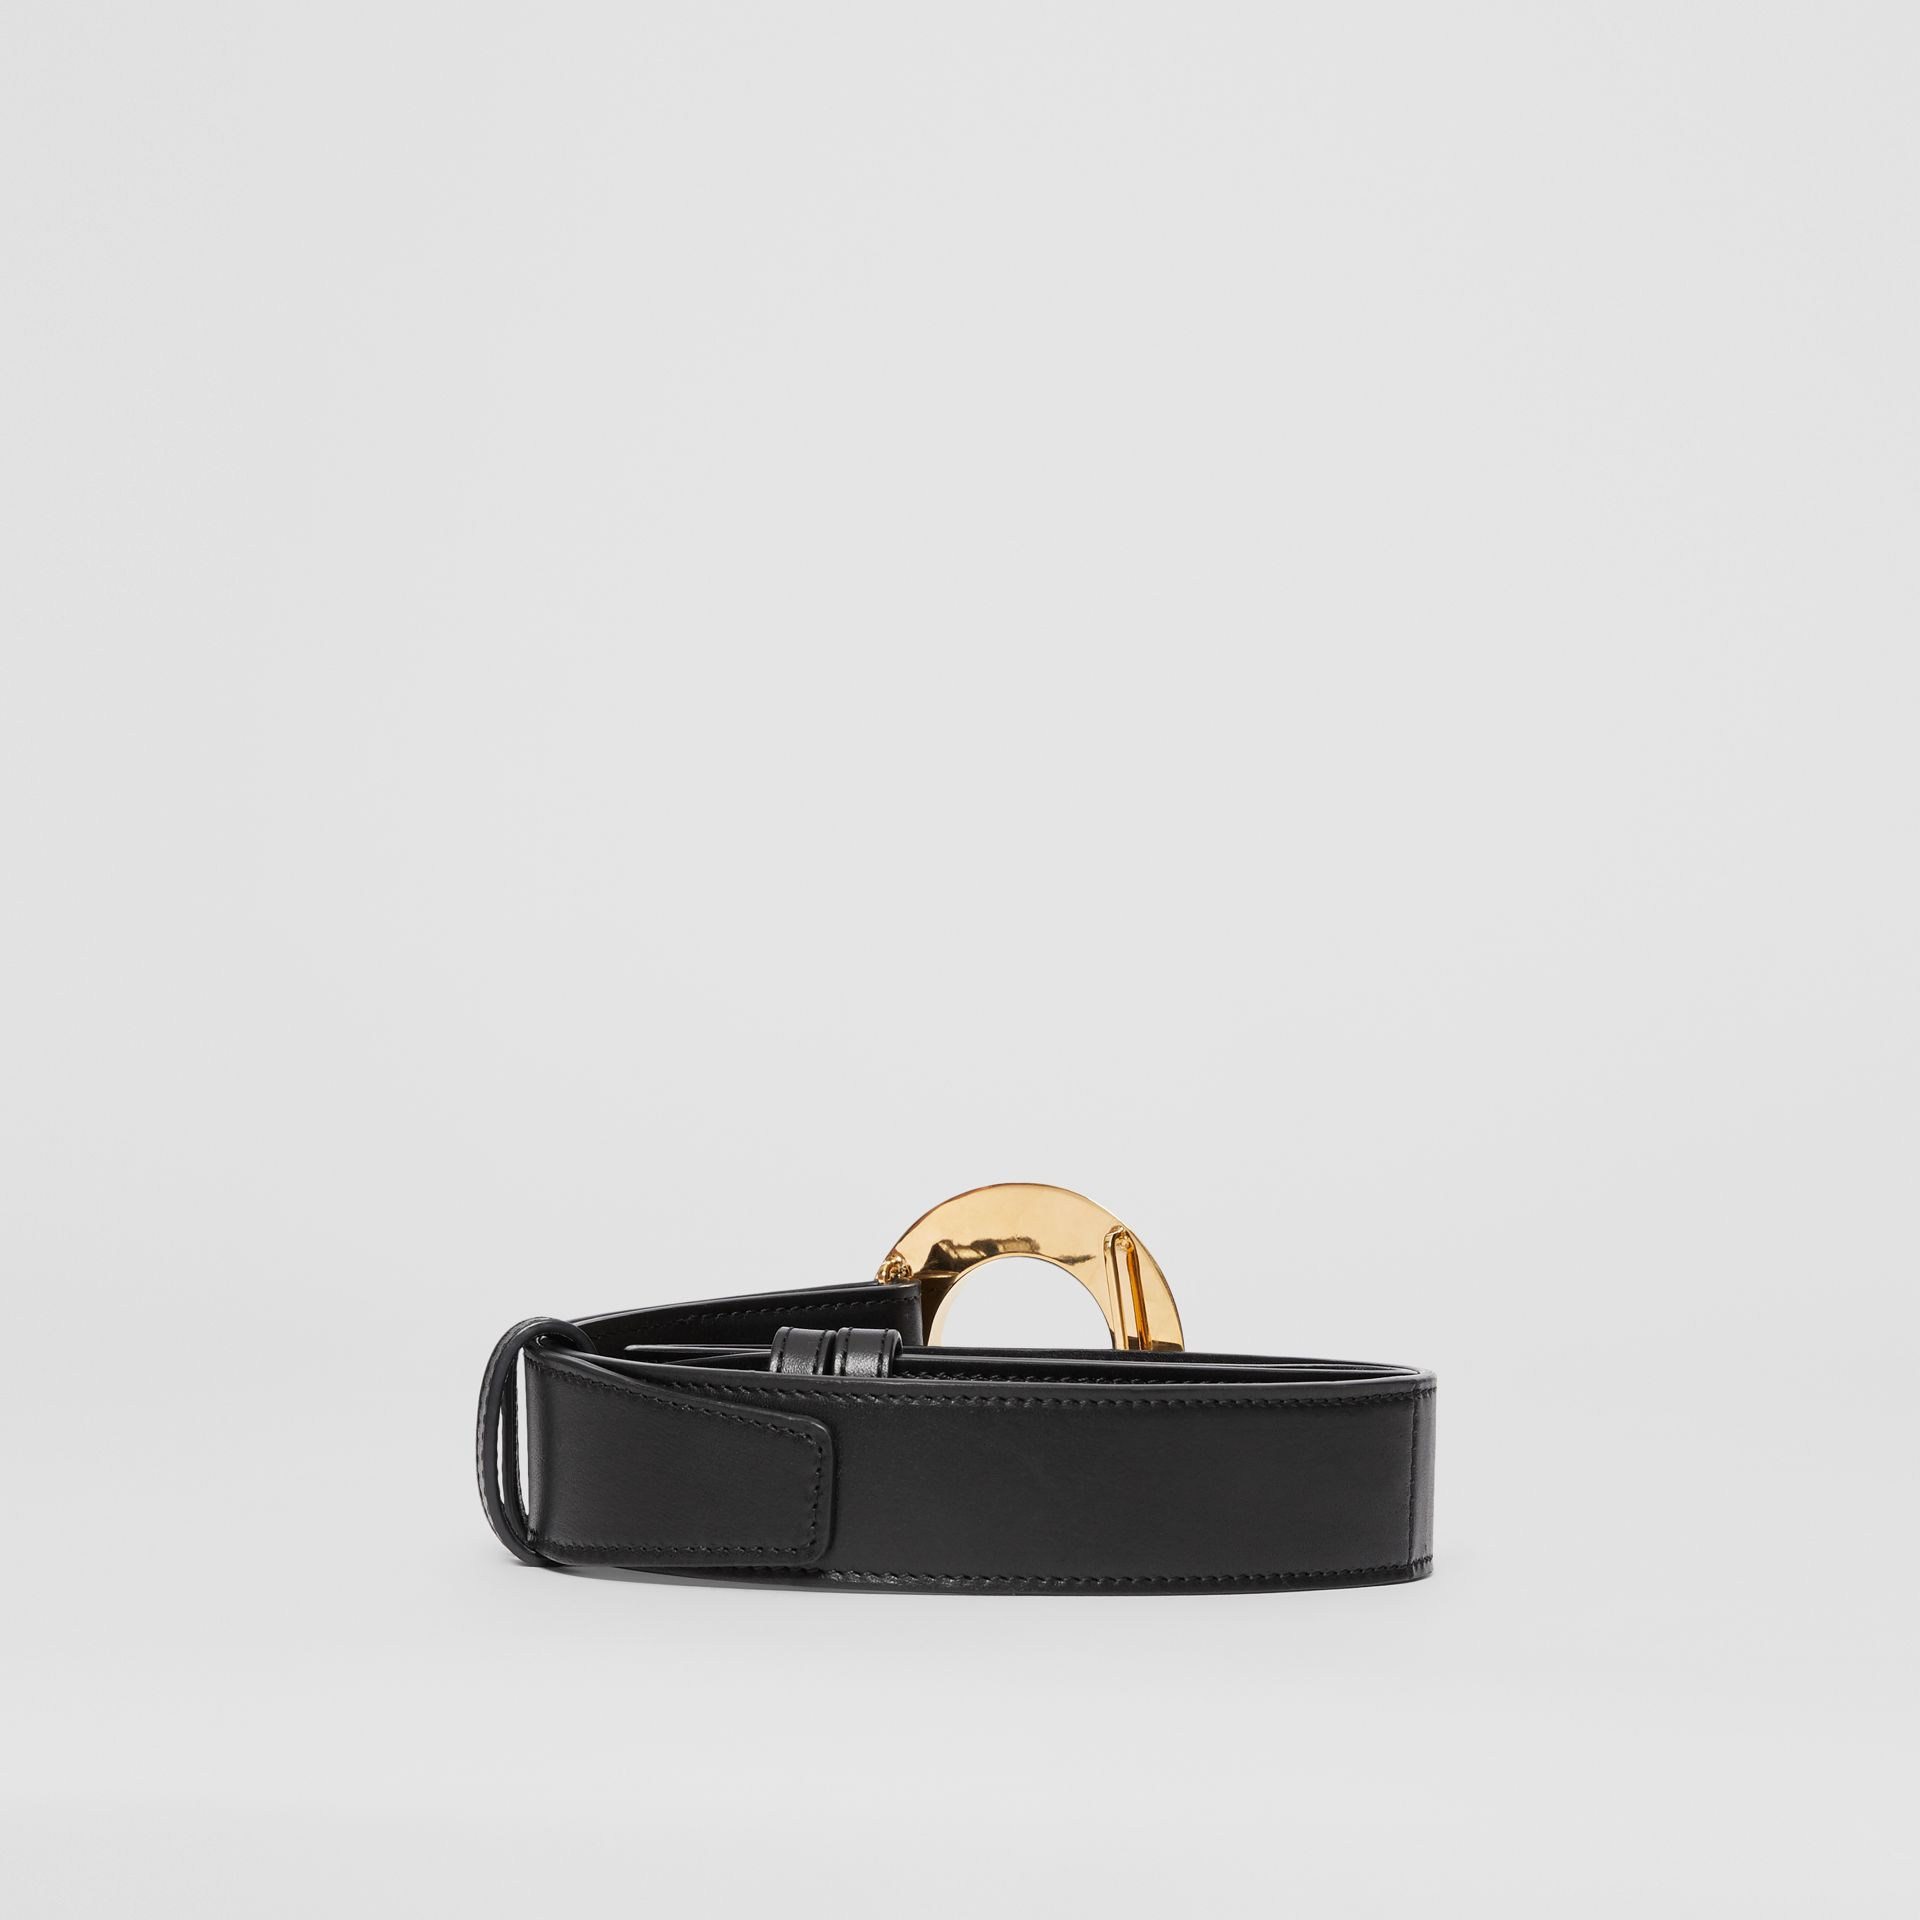 Porthole Buckle Leather Belt in Black - Women | Burberry Singapore - gallery image 4